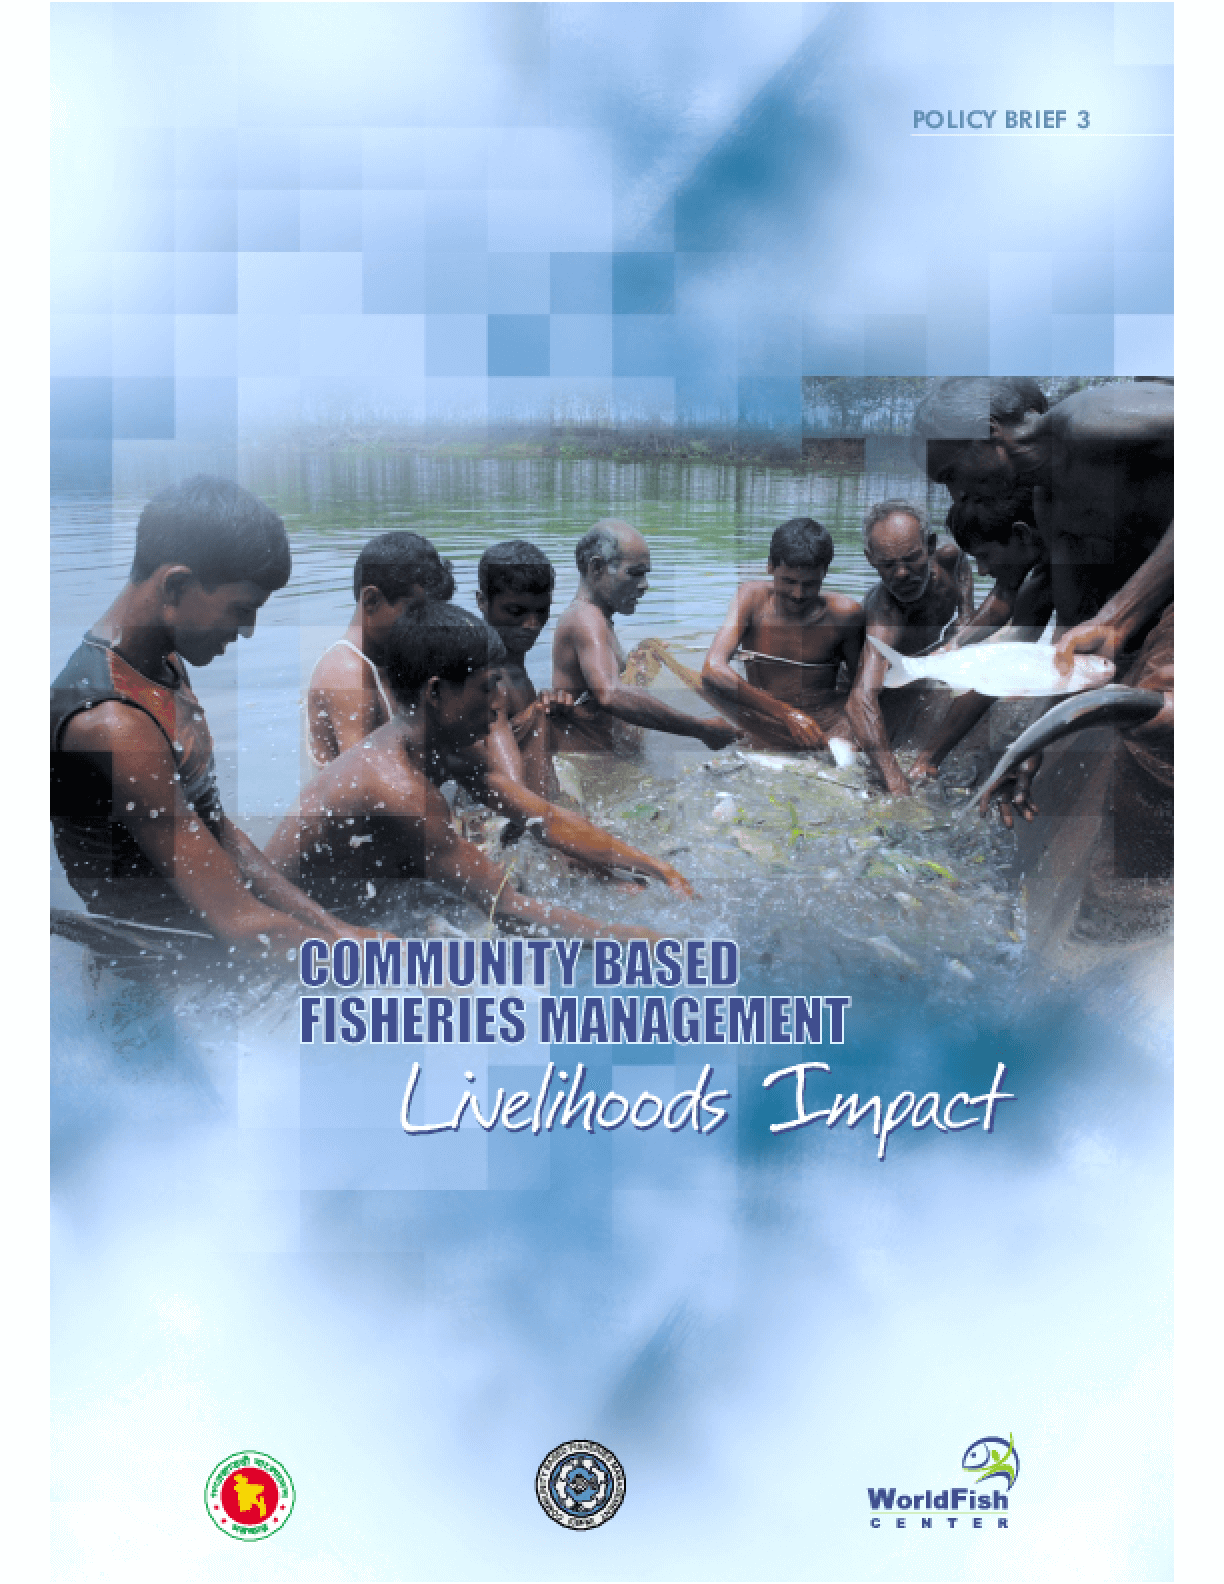 Community Based Fisheries Management: Livelihoods Impact